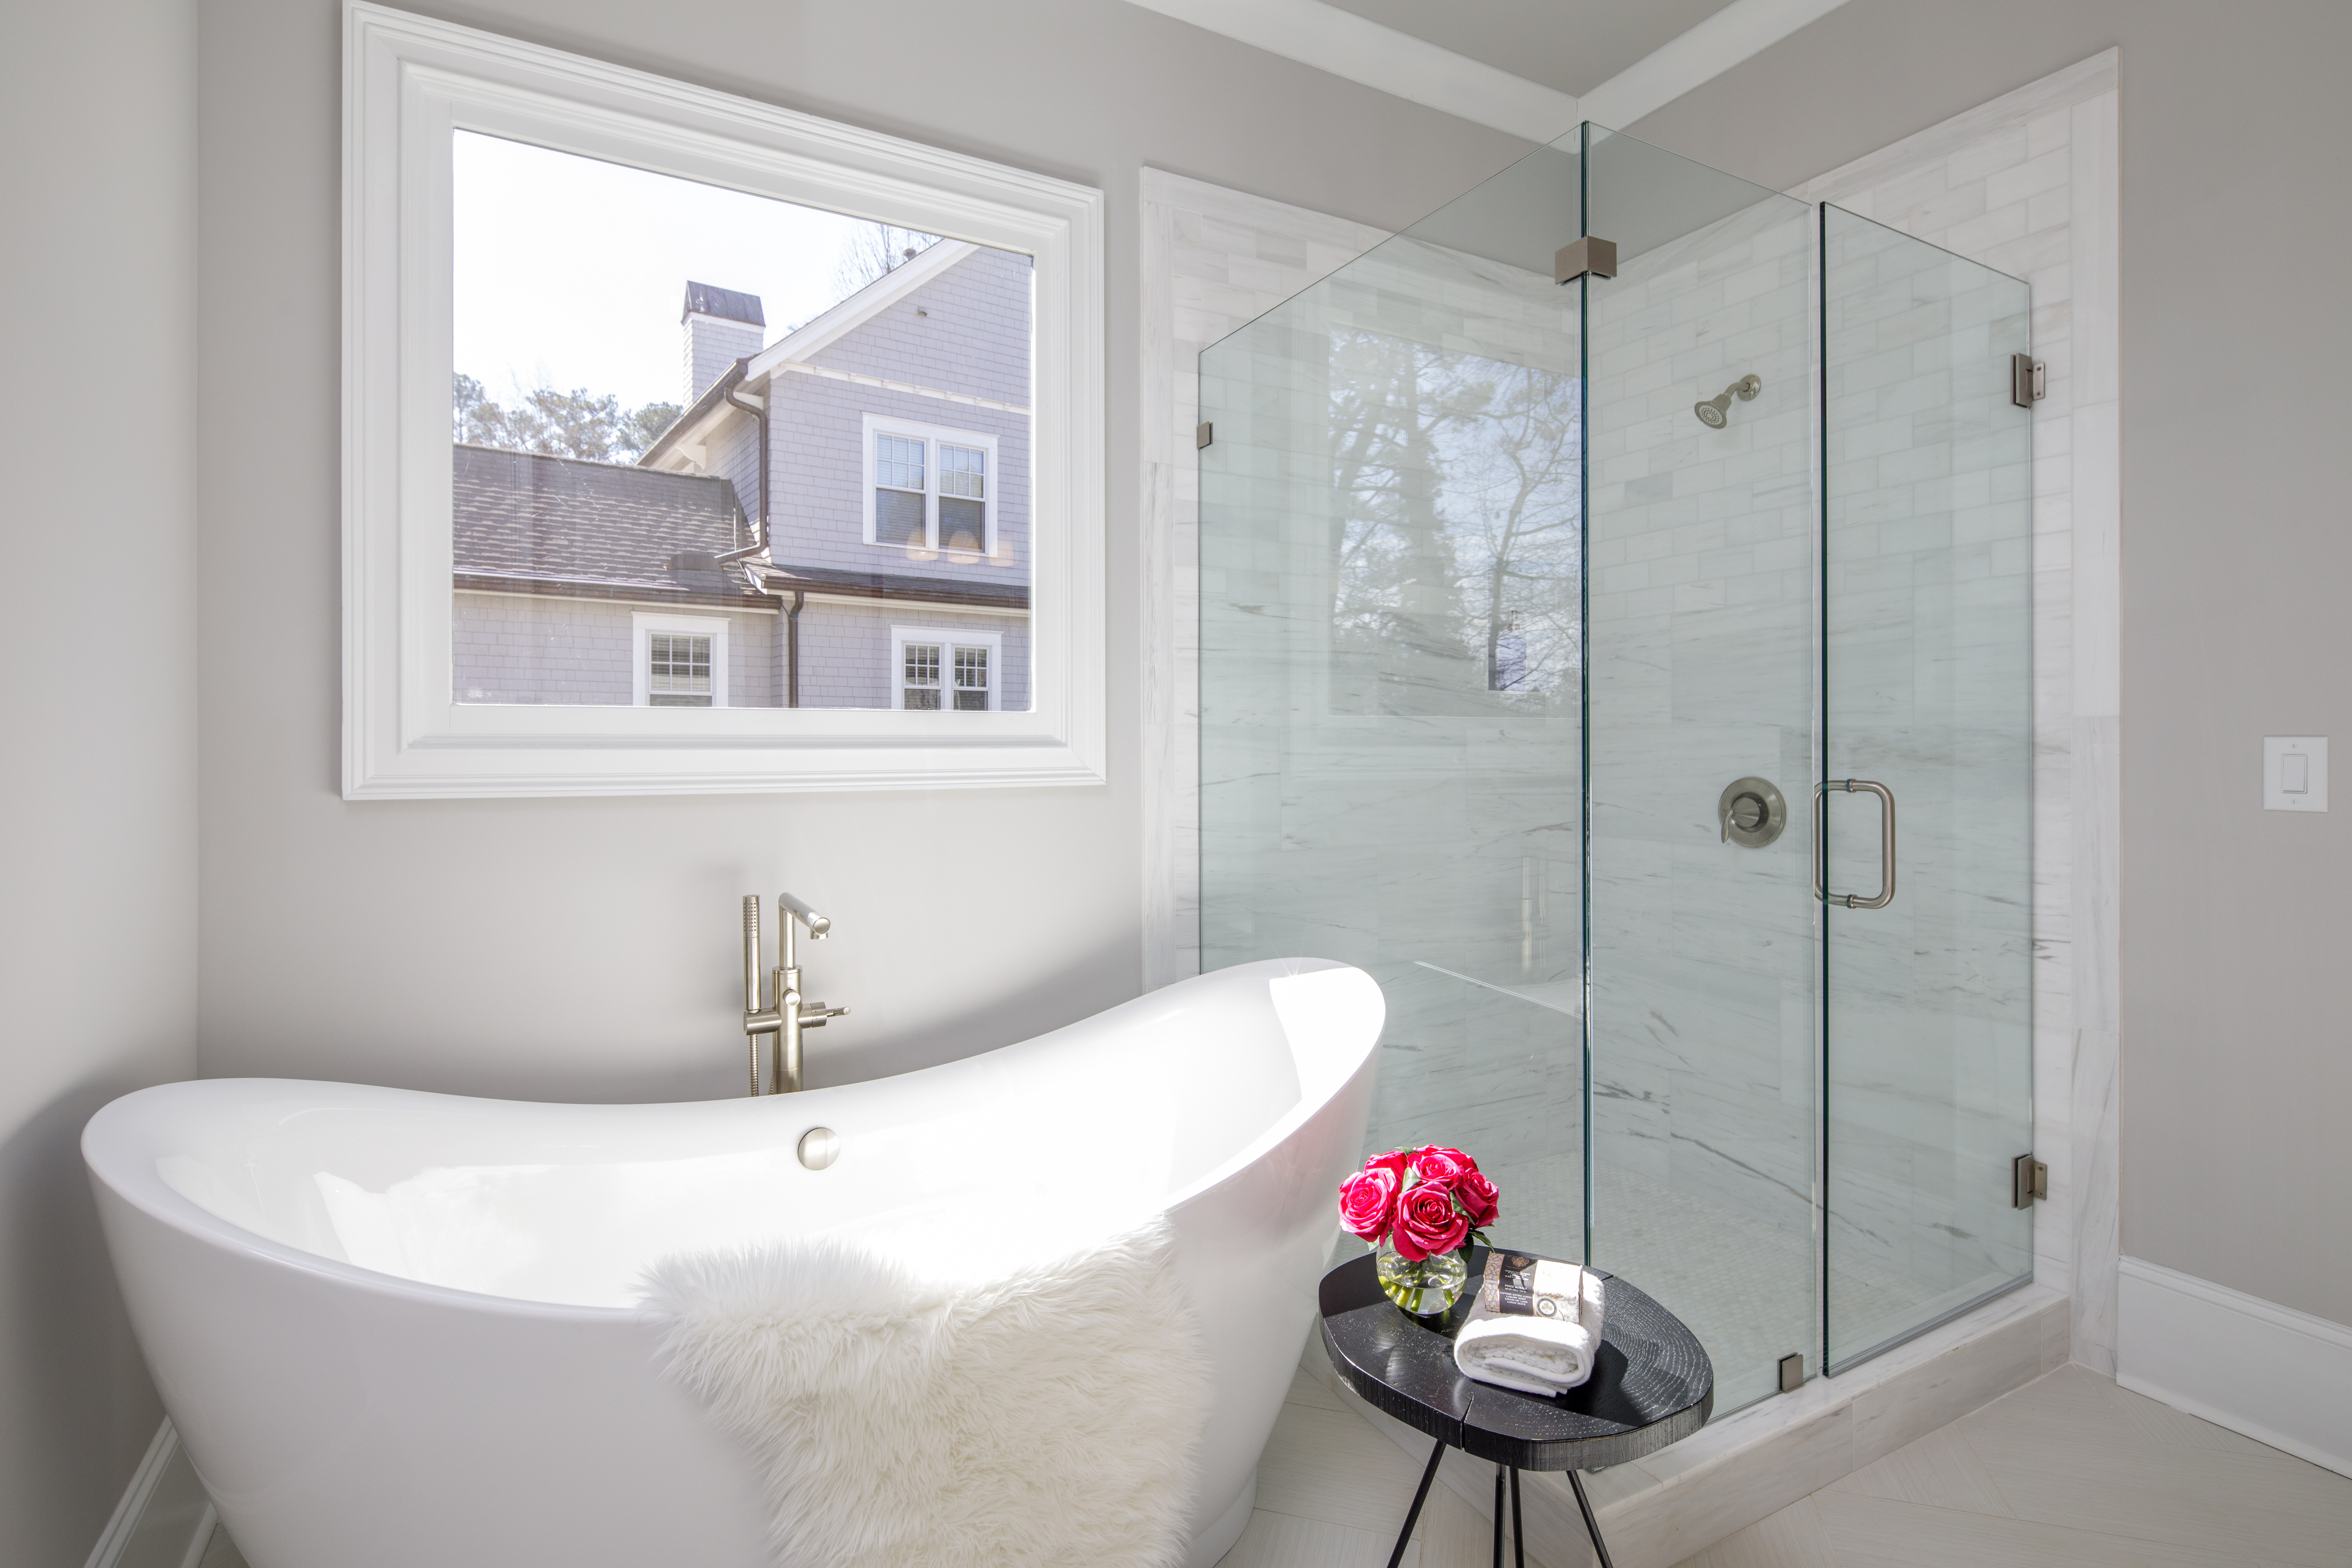 Garden tub in West Roxboro home by Rockhaven Homes